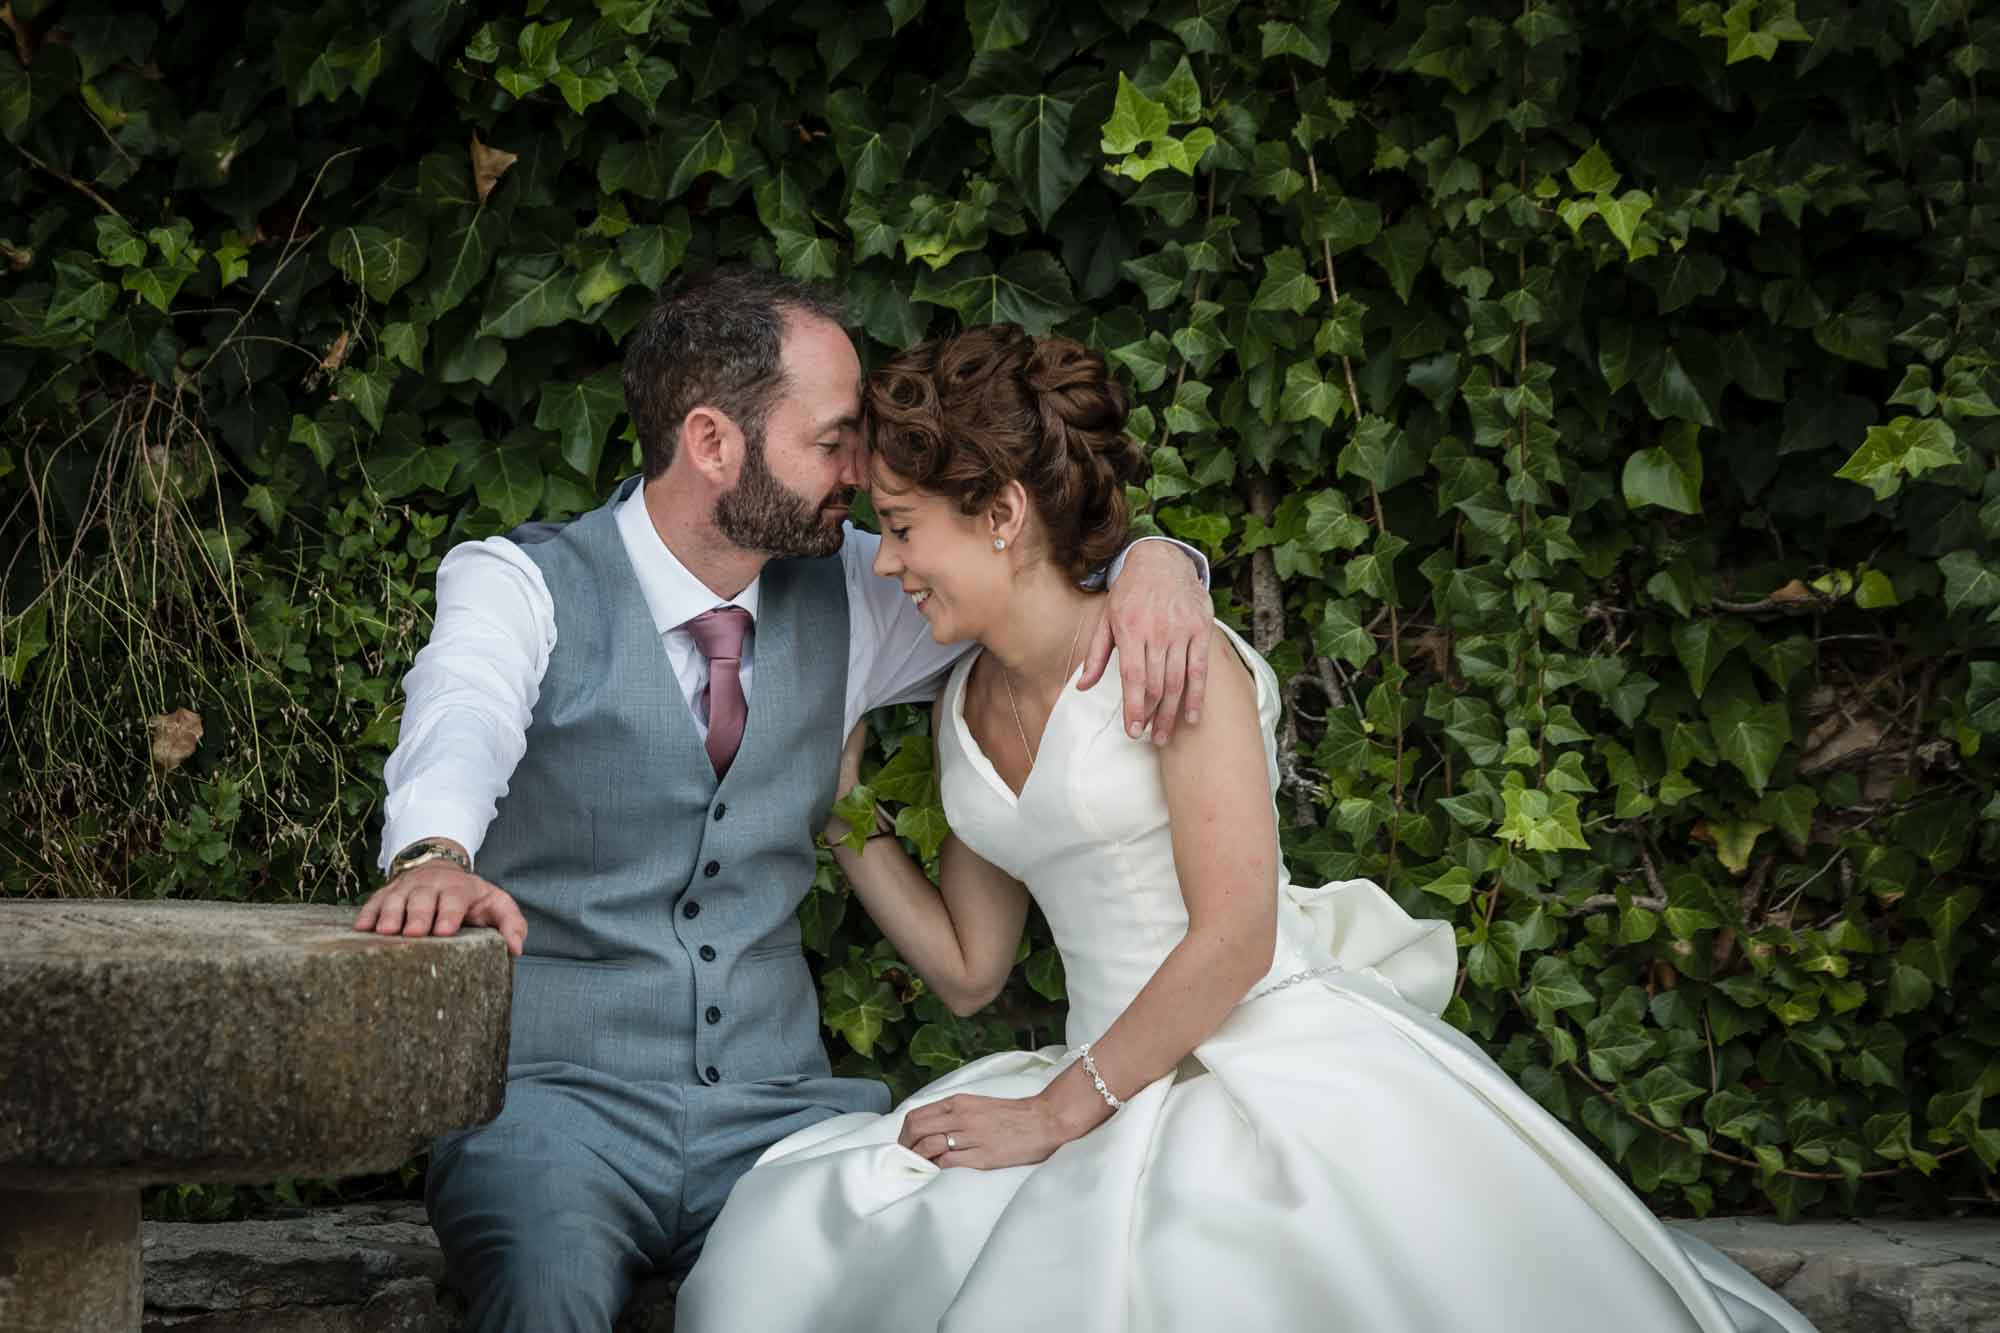 An intimate moment between the bride and groom at their Mallorca finca wedding